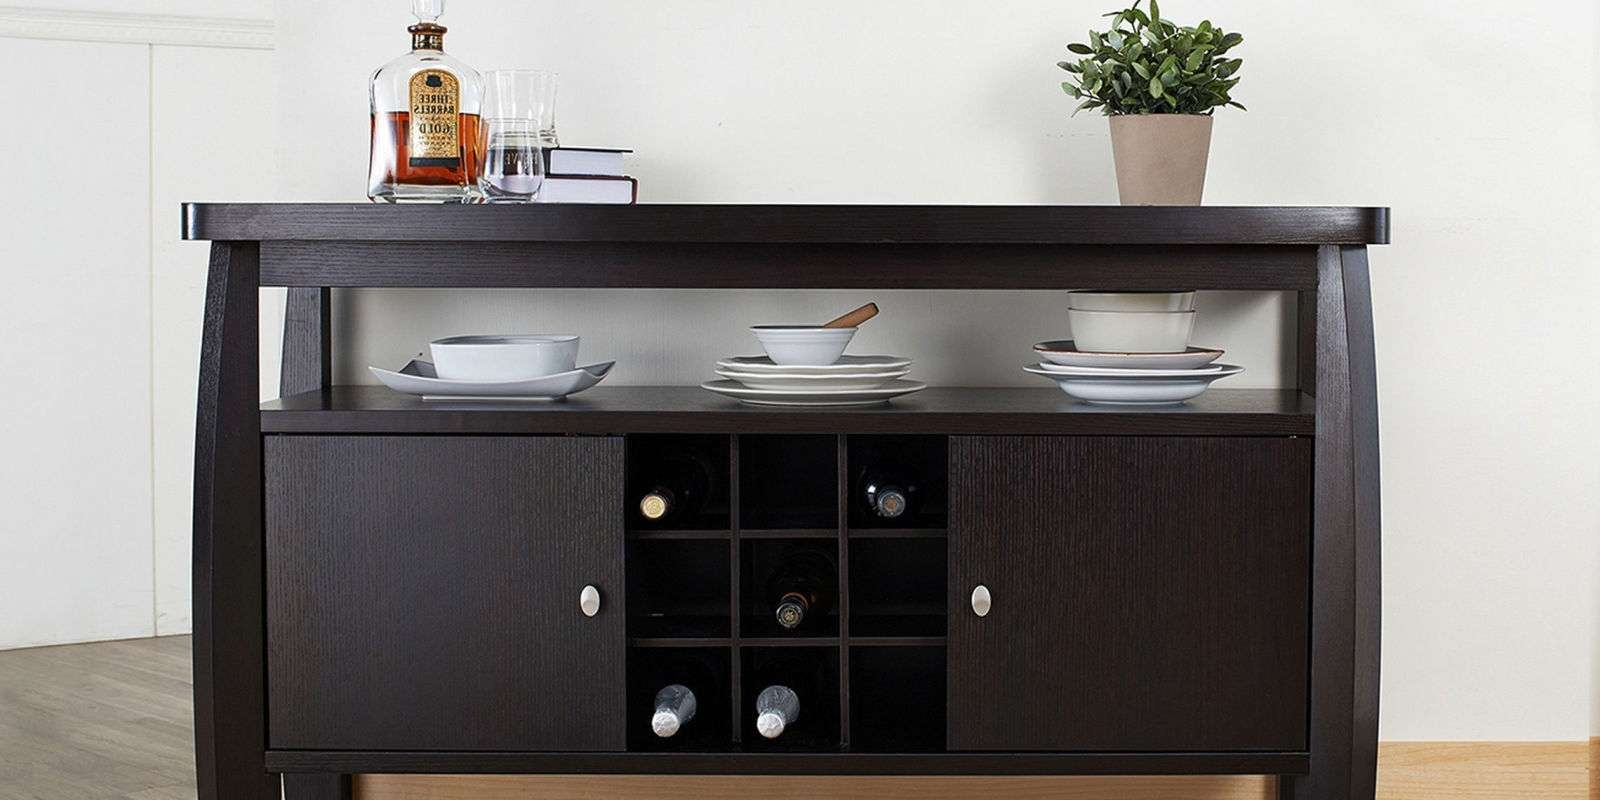 11 Best Sideboards And Buffets In 2018 – Reviews Of Sideboards Within Sideboards And Tables (View 2 of 20)